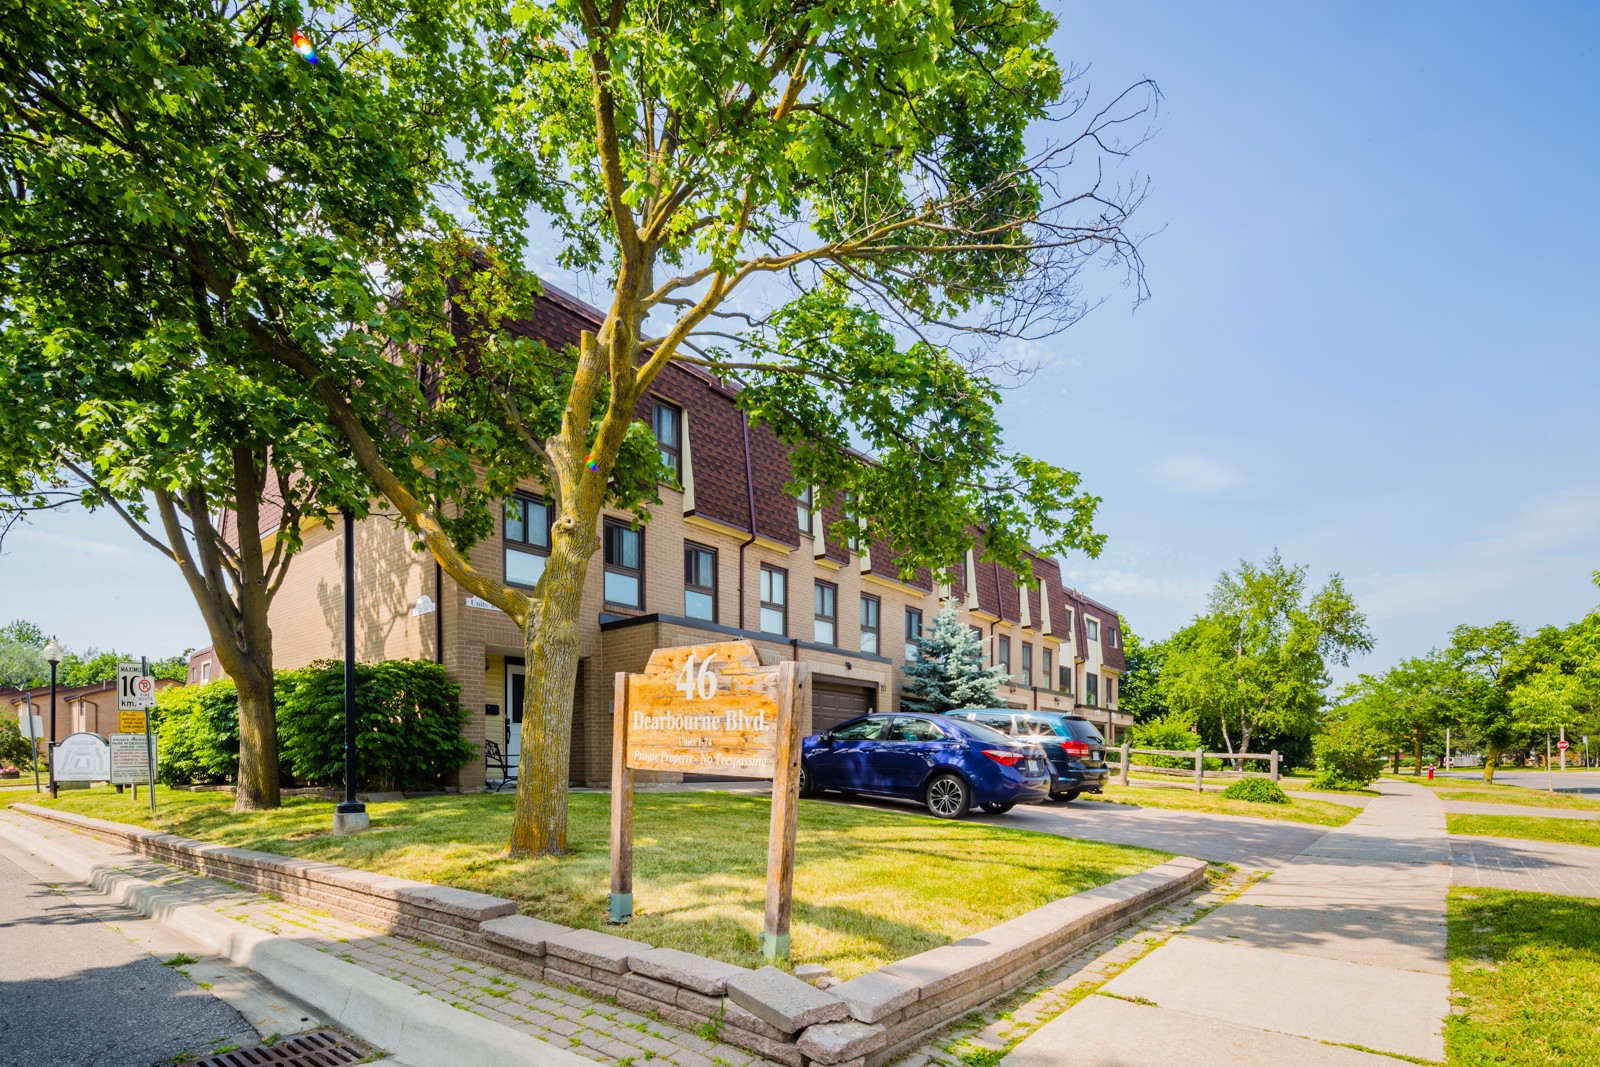 46 Dearbourne Townhouses at 46 Dearbourne Blvd, Brampton 0